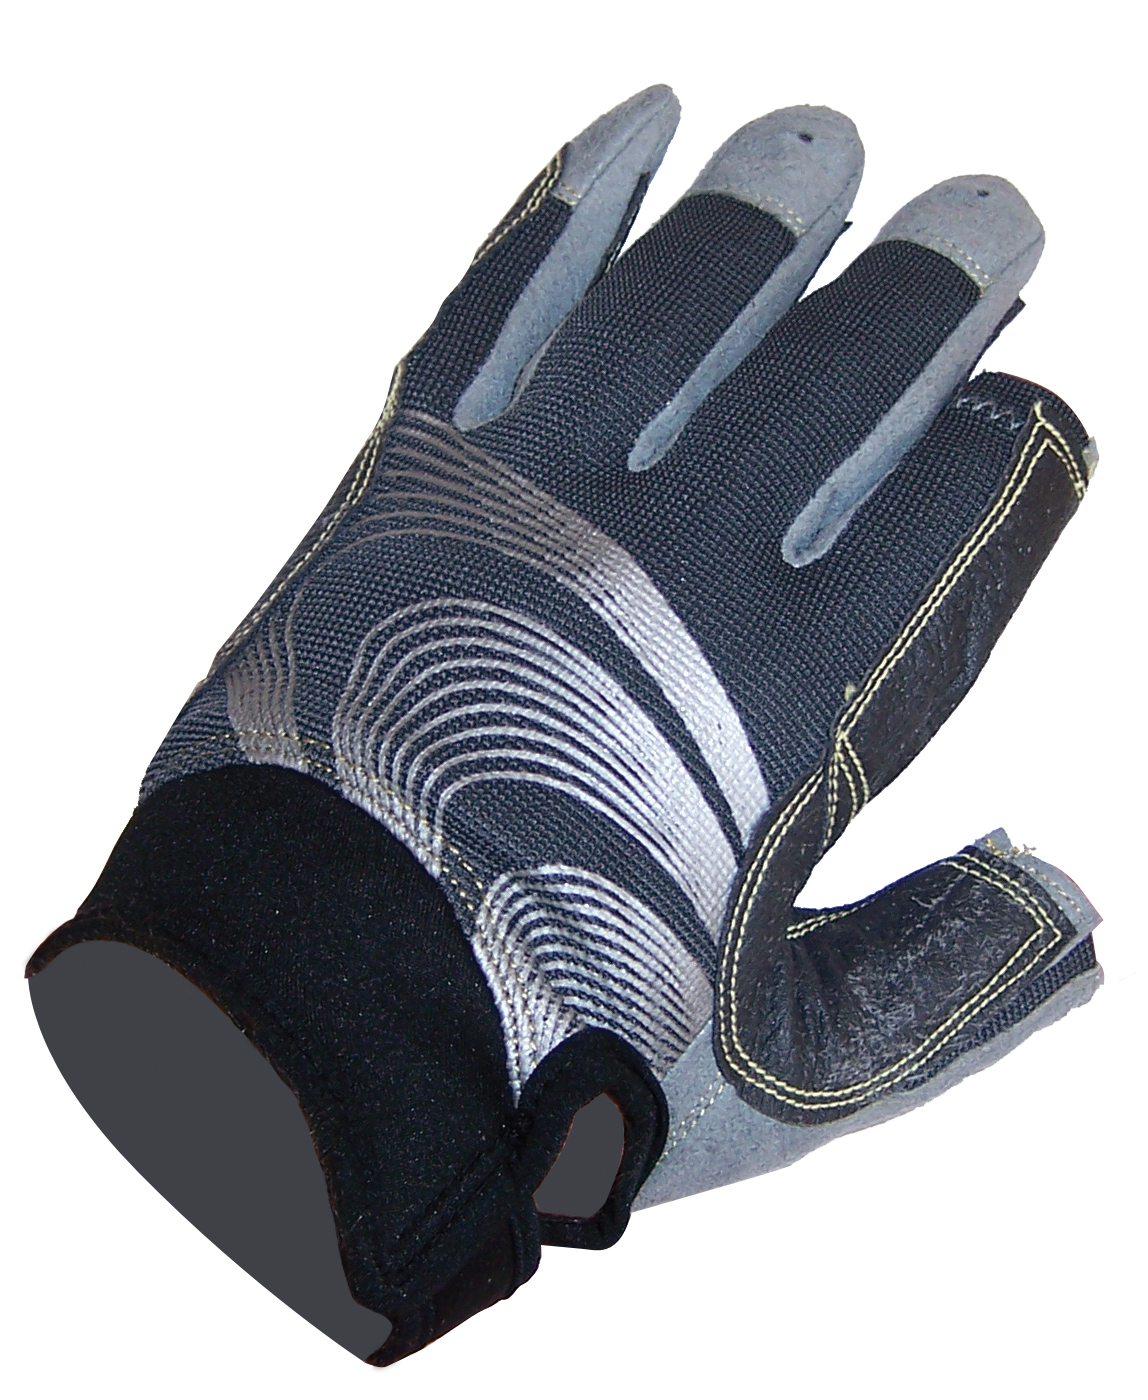 GLOVES-3 FINGER XS STICKY